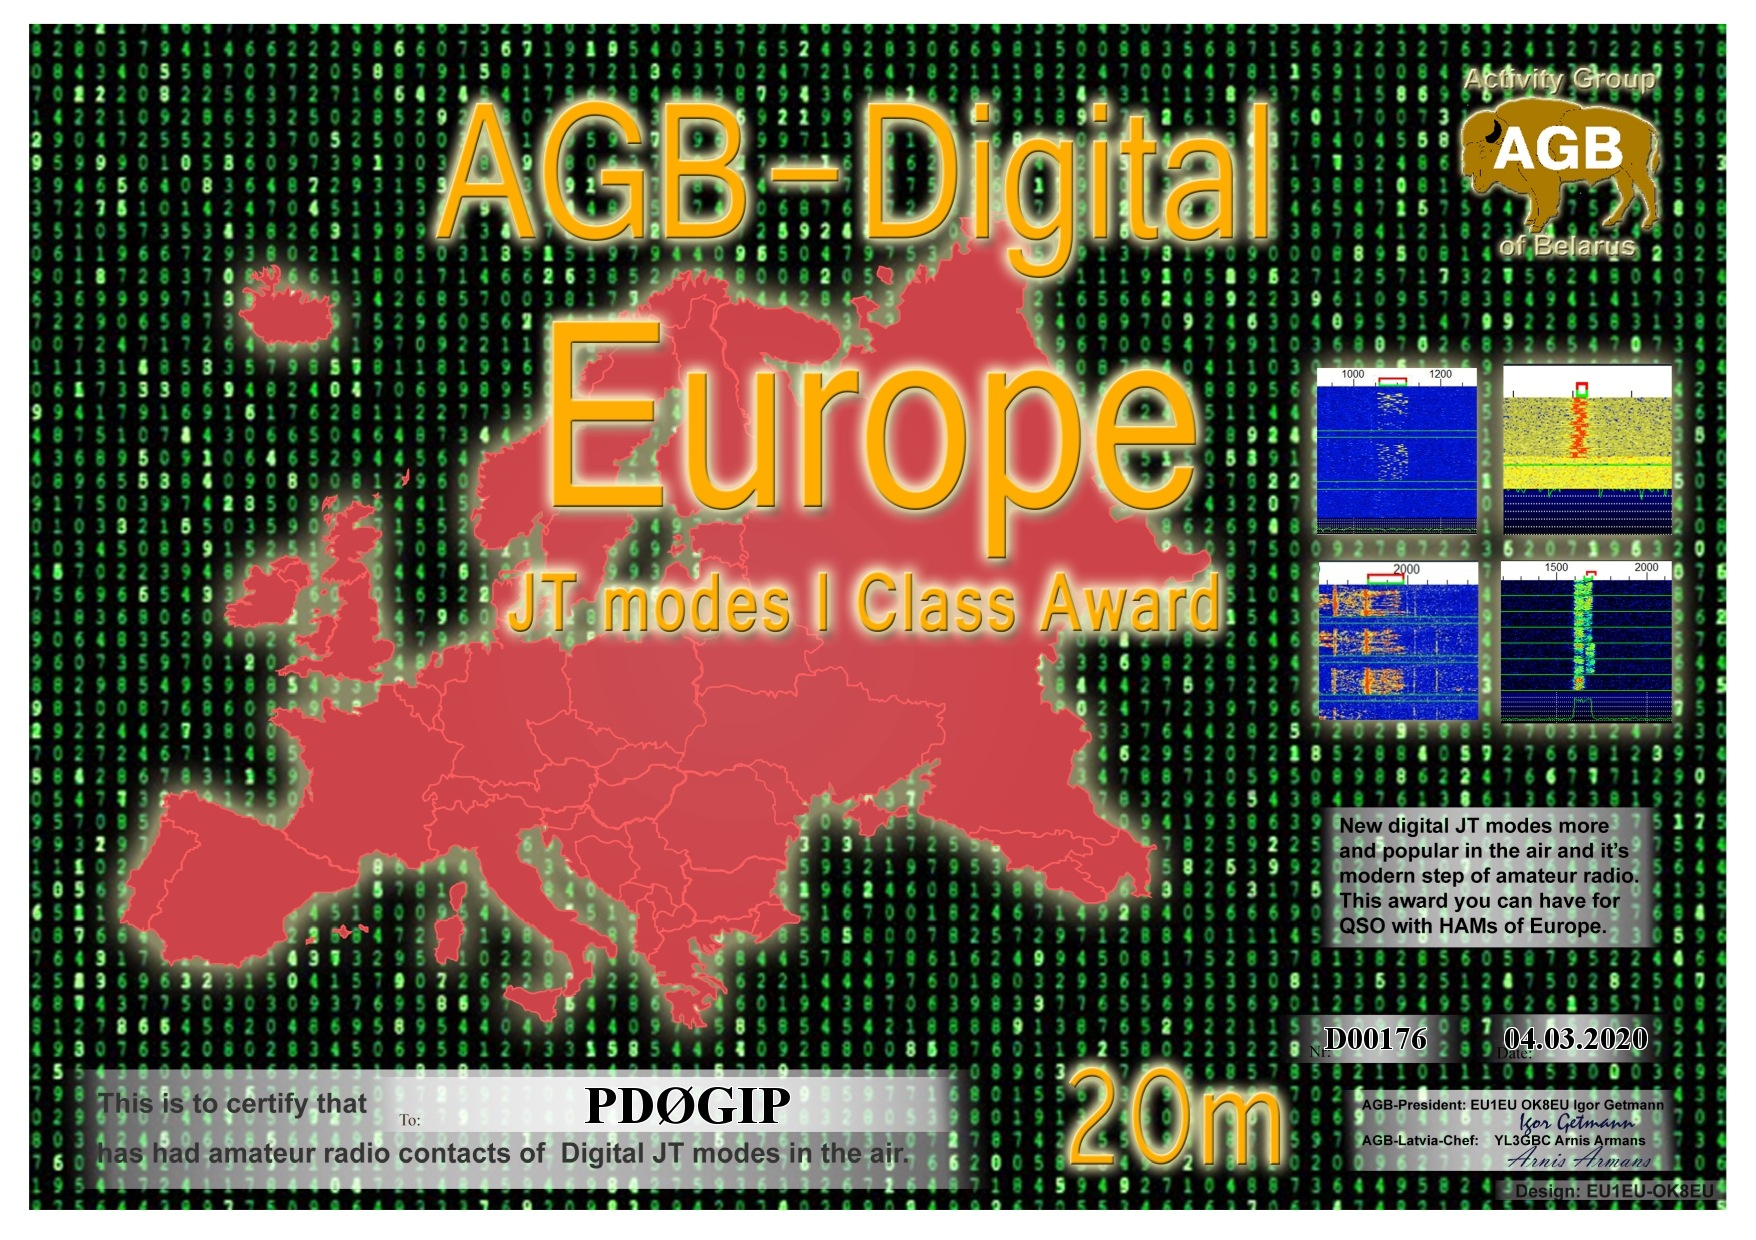 PD0GIP EUROPE 20M I AGB